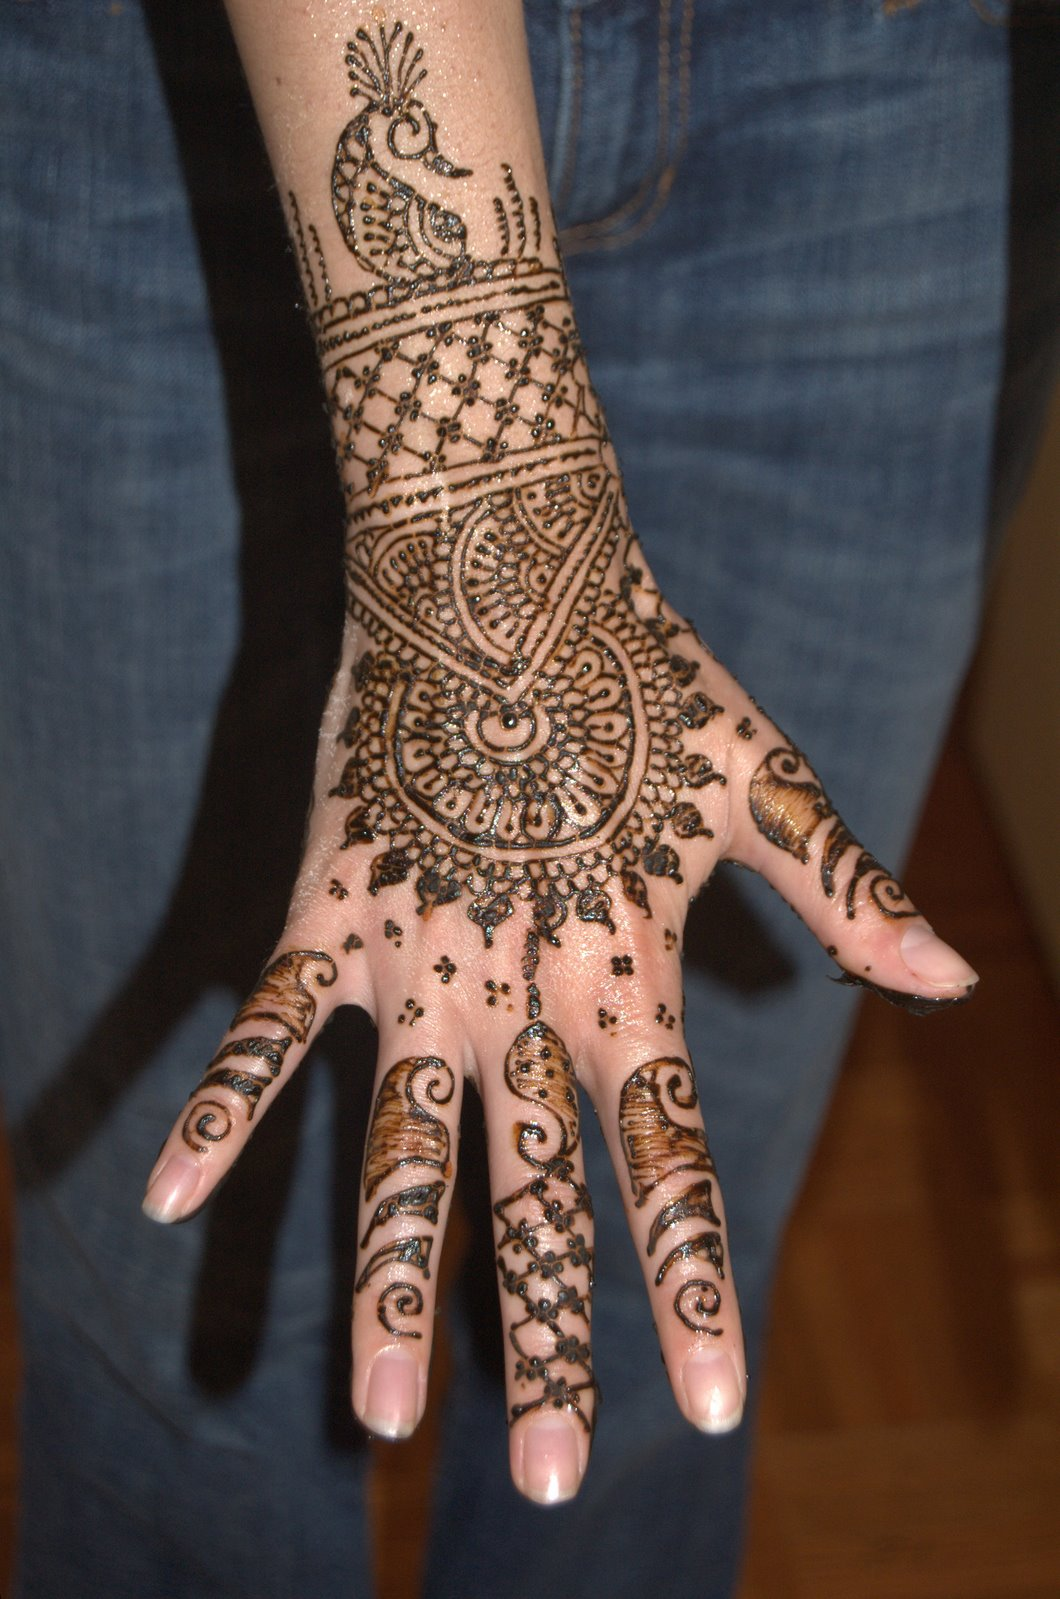 Mehndi Designs For S : Mehndi designs on hands